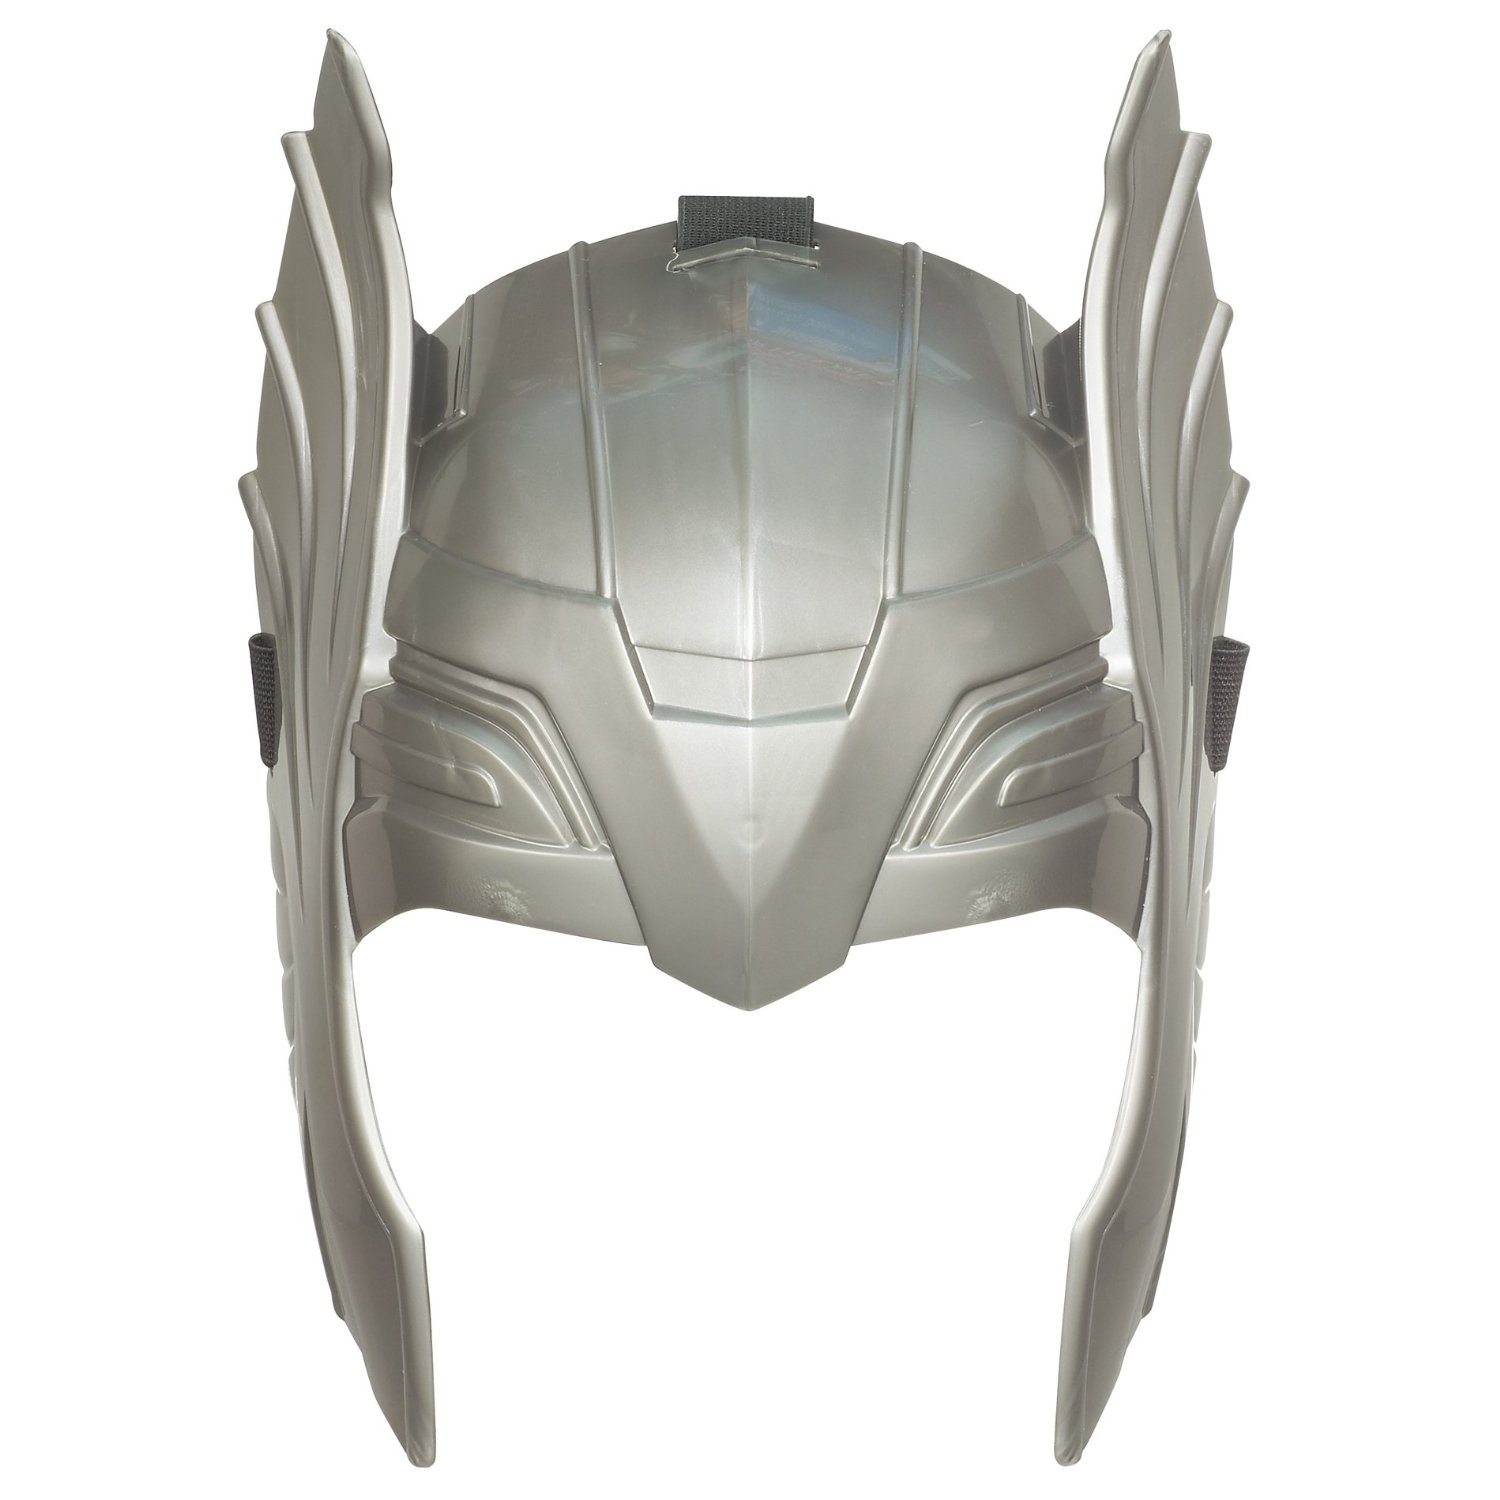 the thor helmet